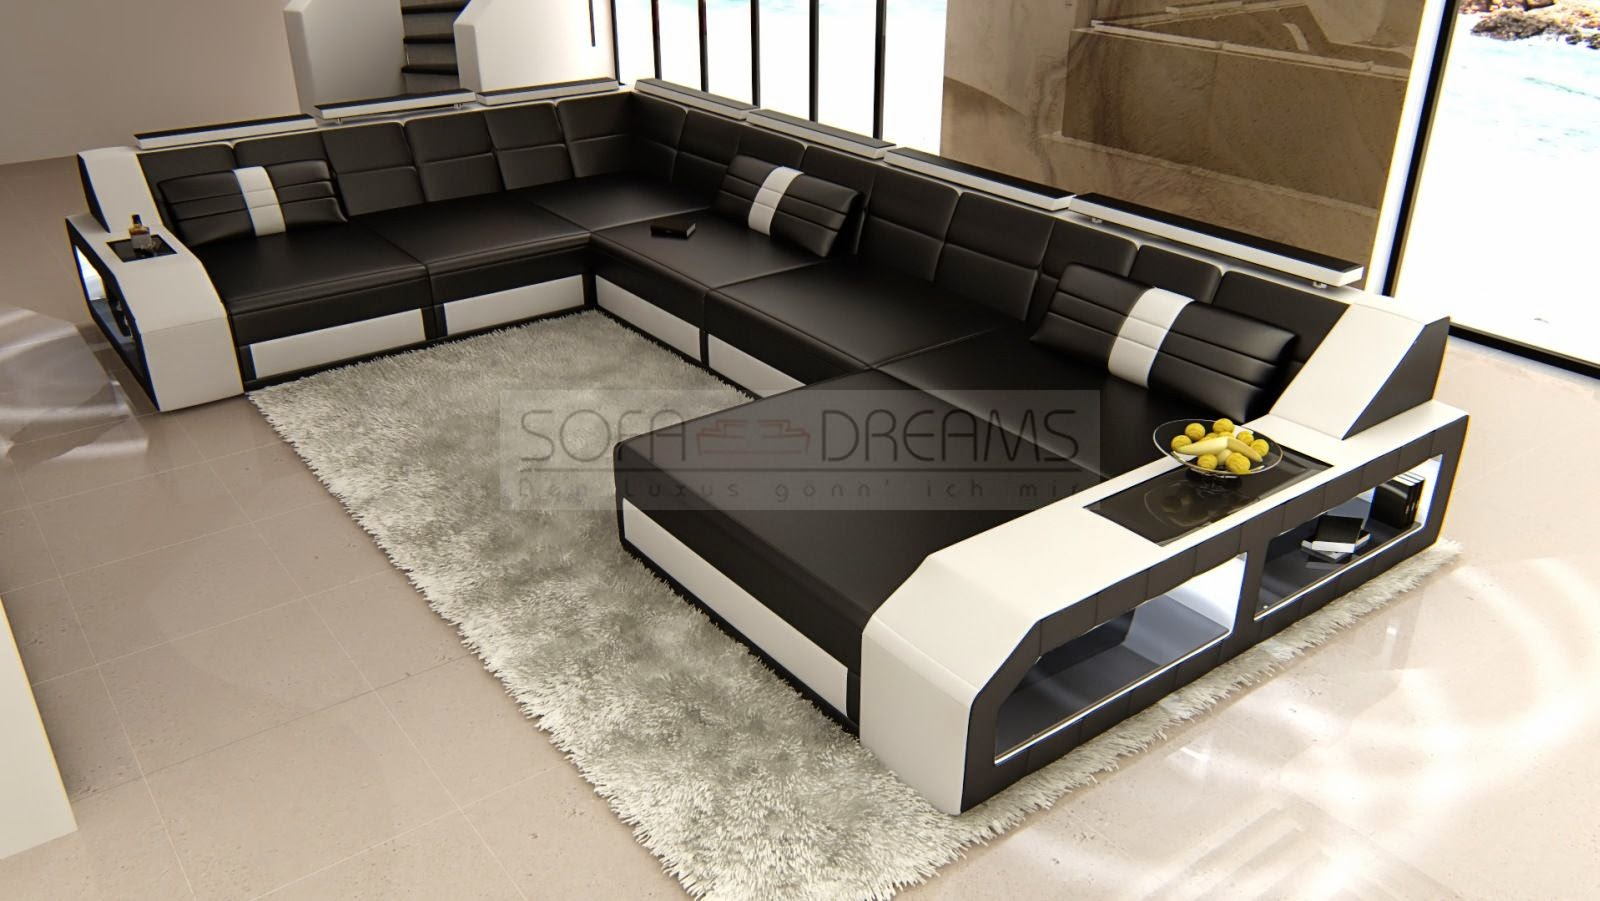 ledersofas sofas vom designer ledersofa matera das designer sofa als wohnlandschaft. Black Bedroom Furniture Sets. Home Design Ideas